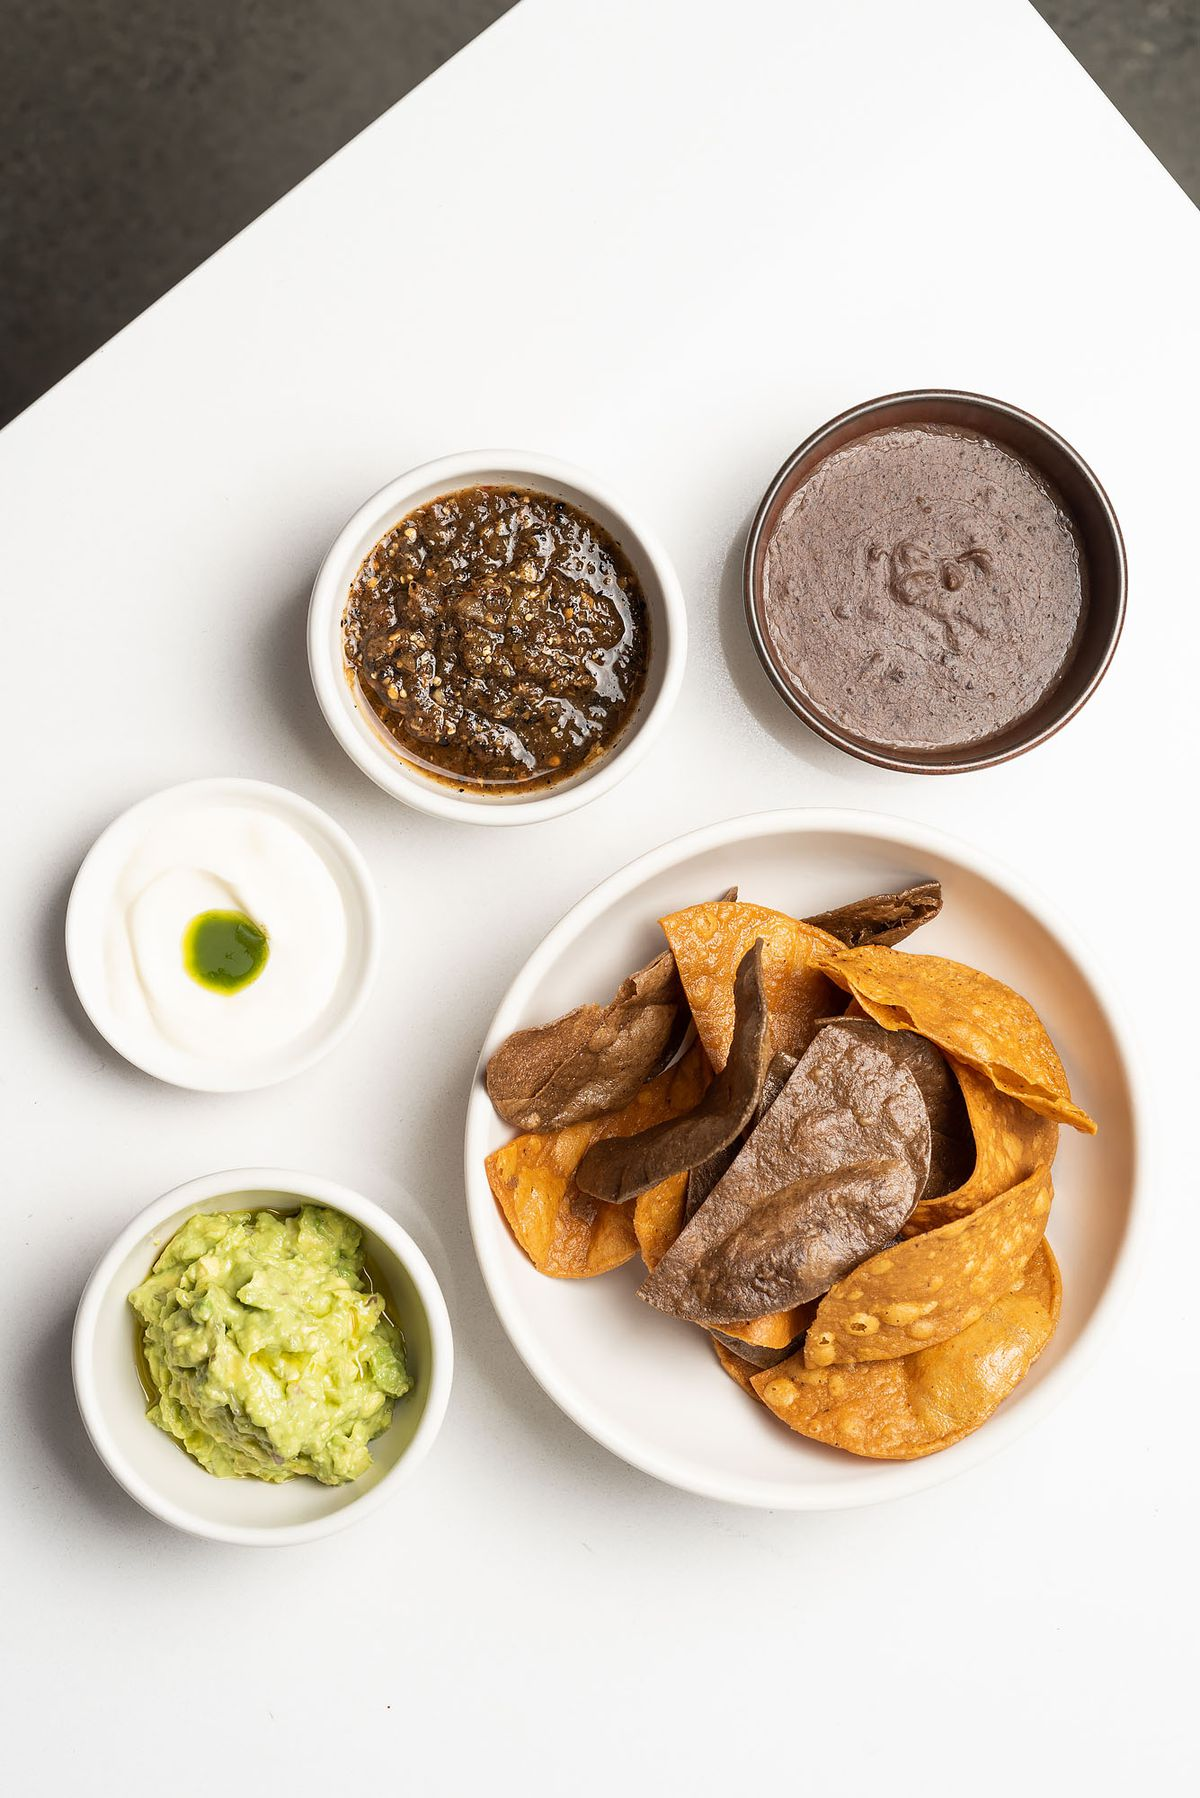 One large dish containing chips is surrounded by four smaller dishes, each holding a dip.